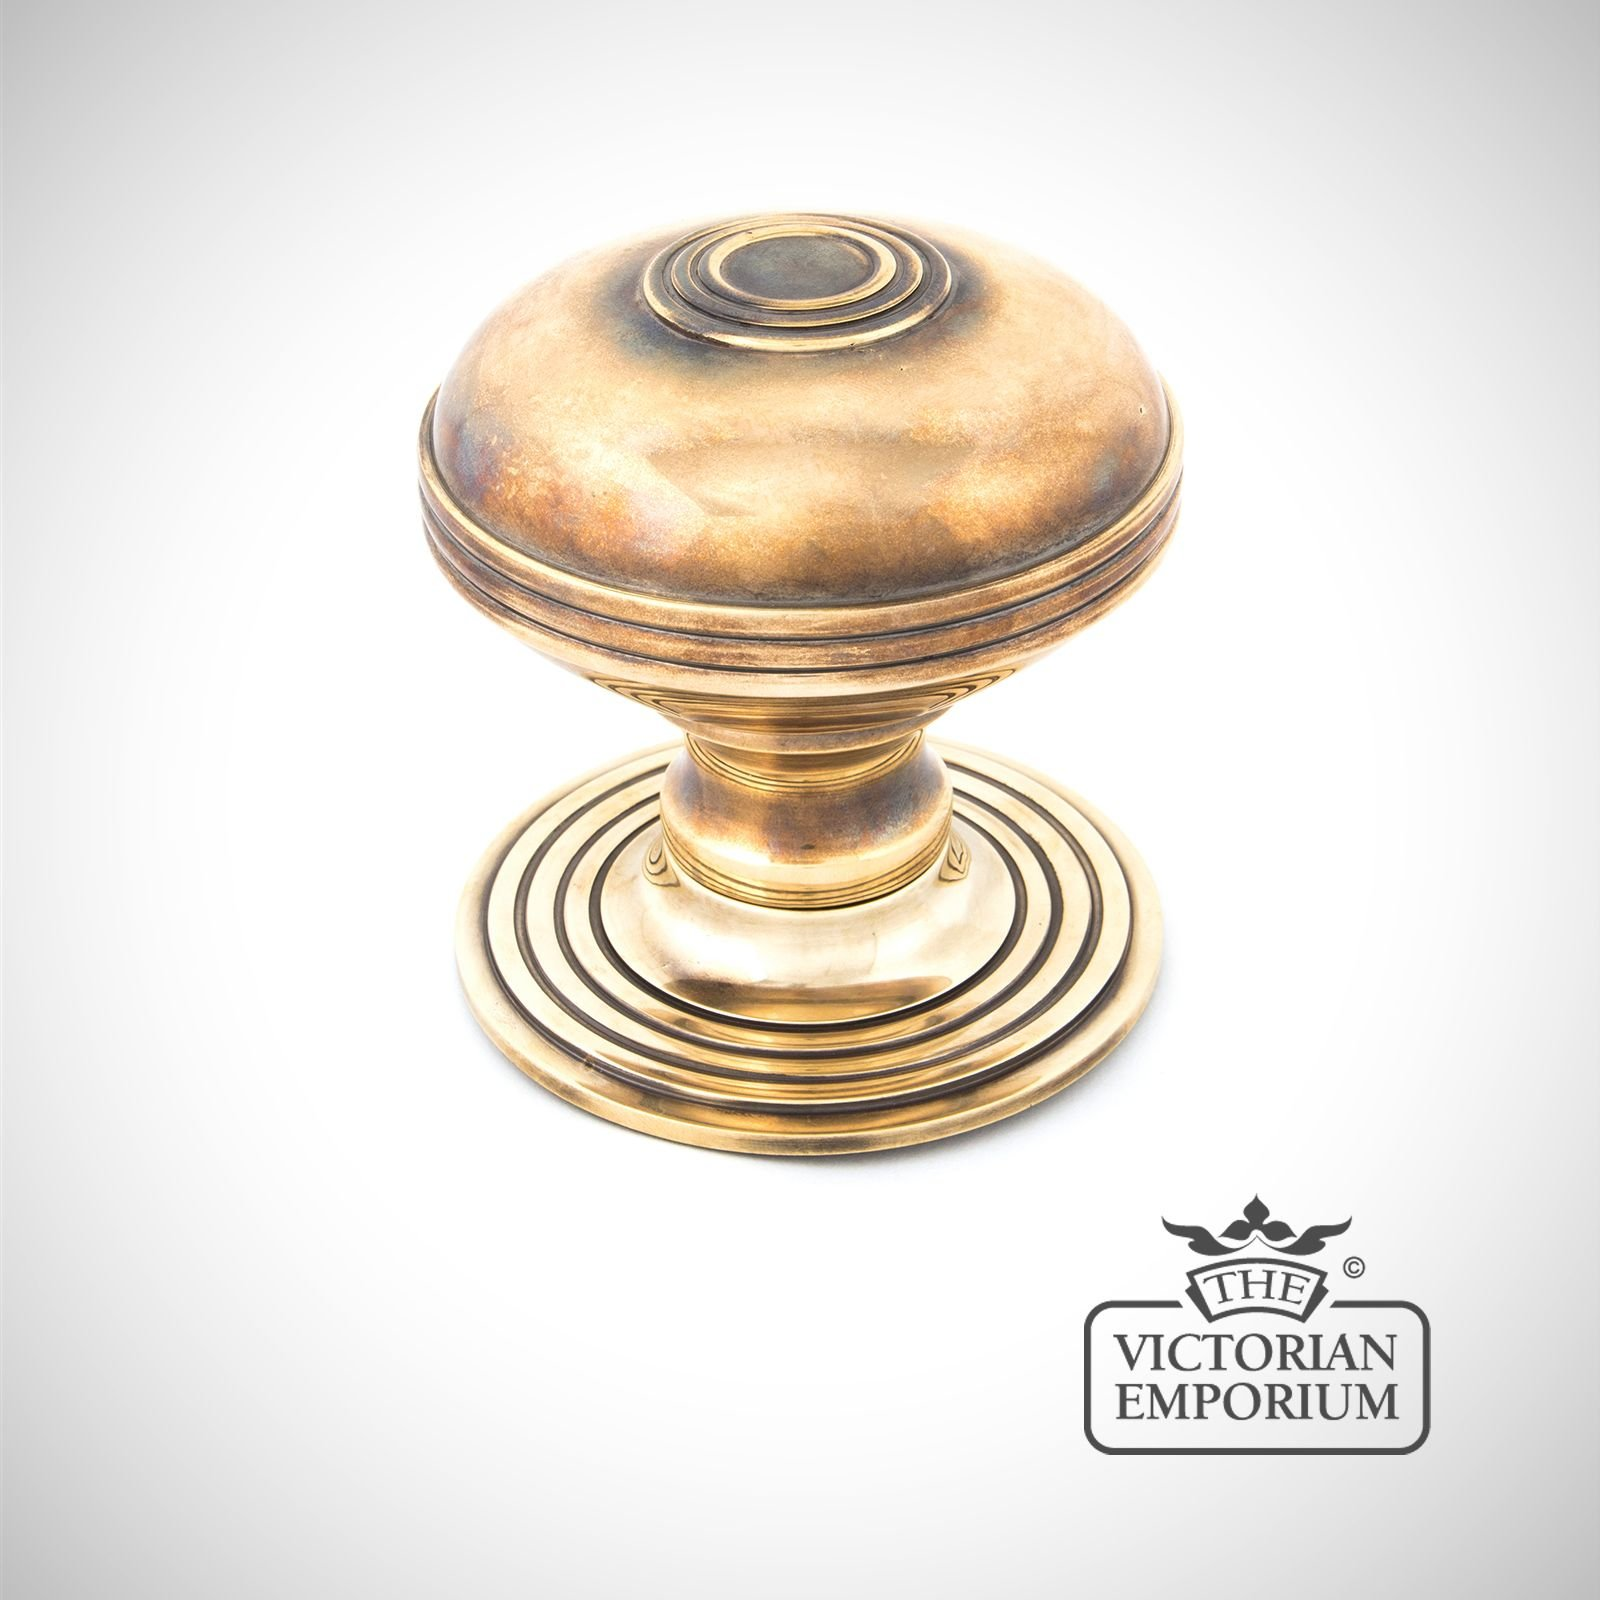 Pressbury centre door knob in Aged Brass Door knobs and door handles